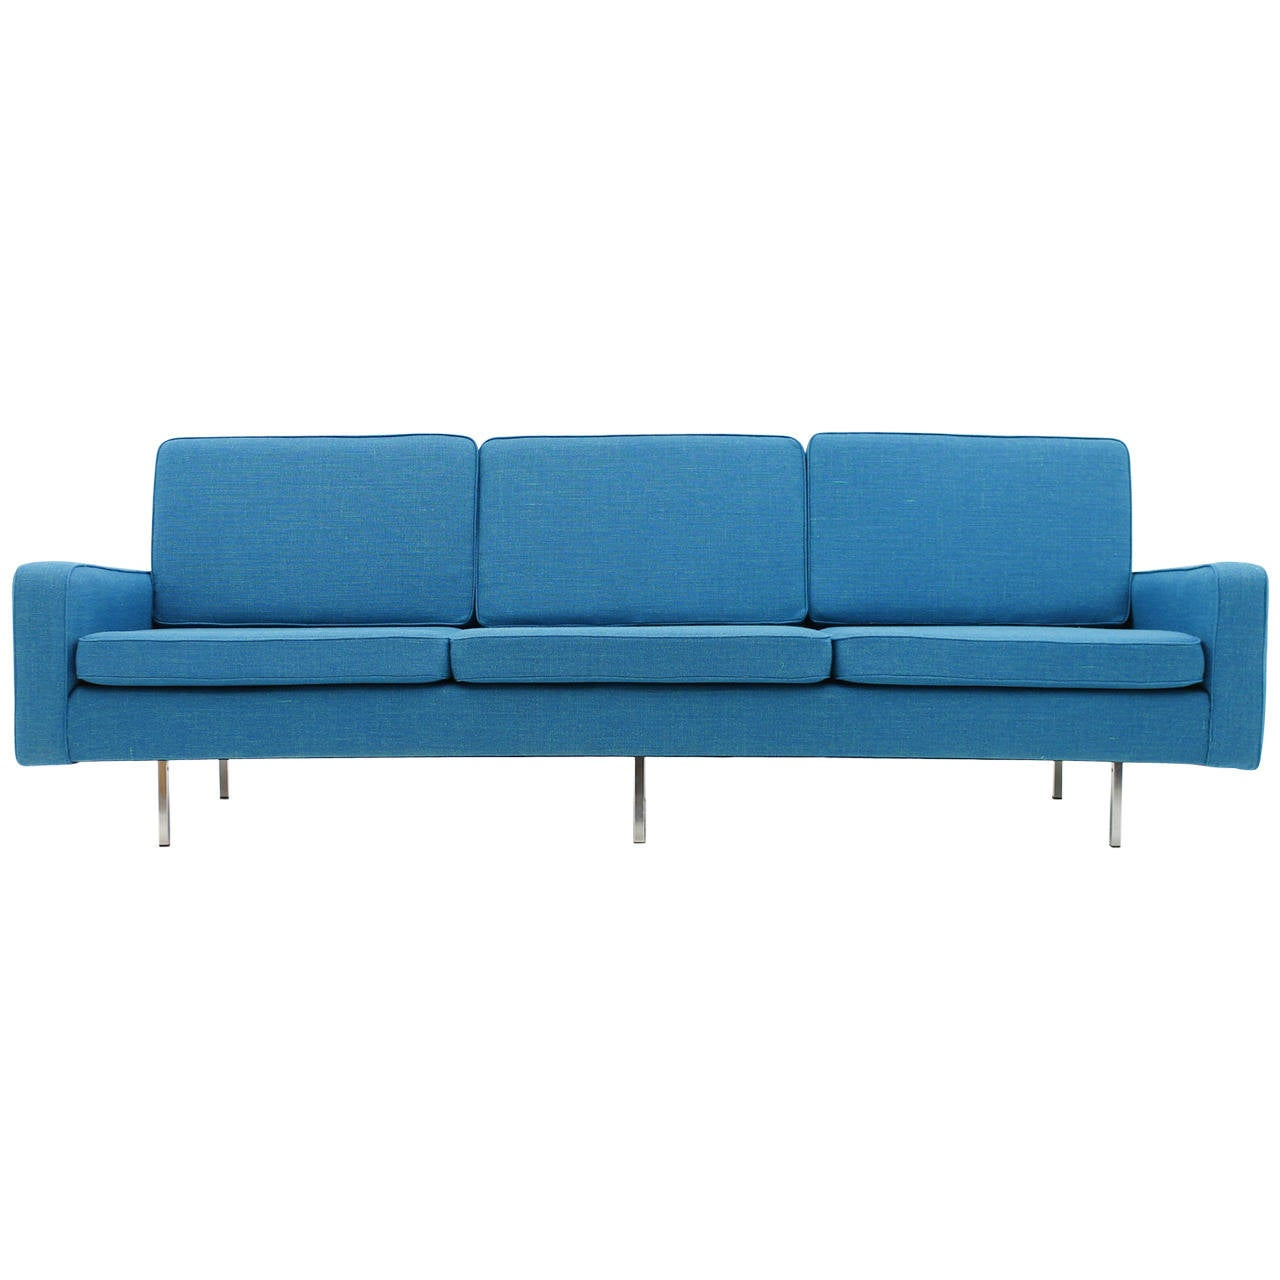 Three Seat Sofa By Florence Knoll For Knoll International 1949 At 1stdibs